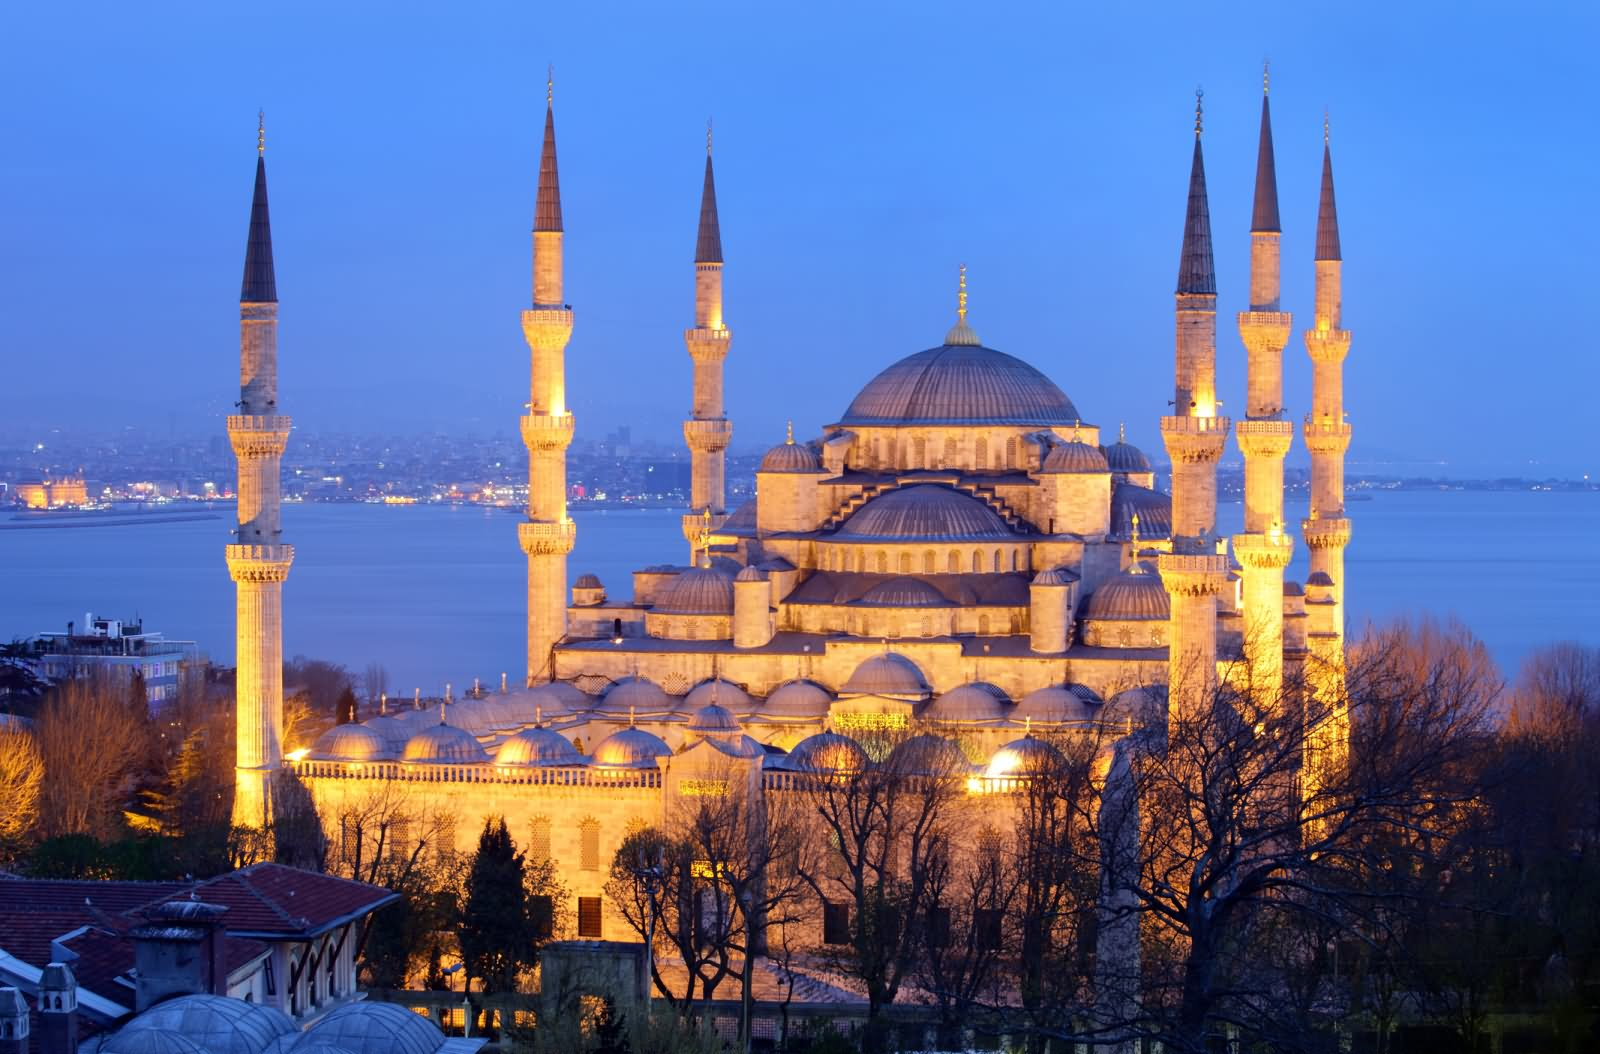 Büyük Valide Han Istanbul, The Blue Mosque, Istanbul During Sunset